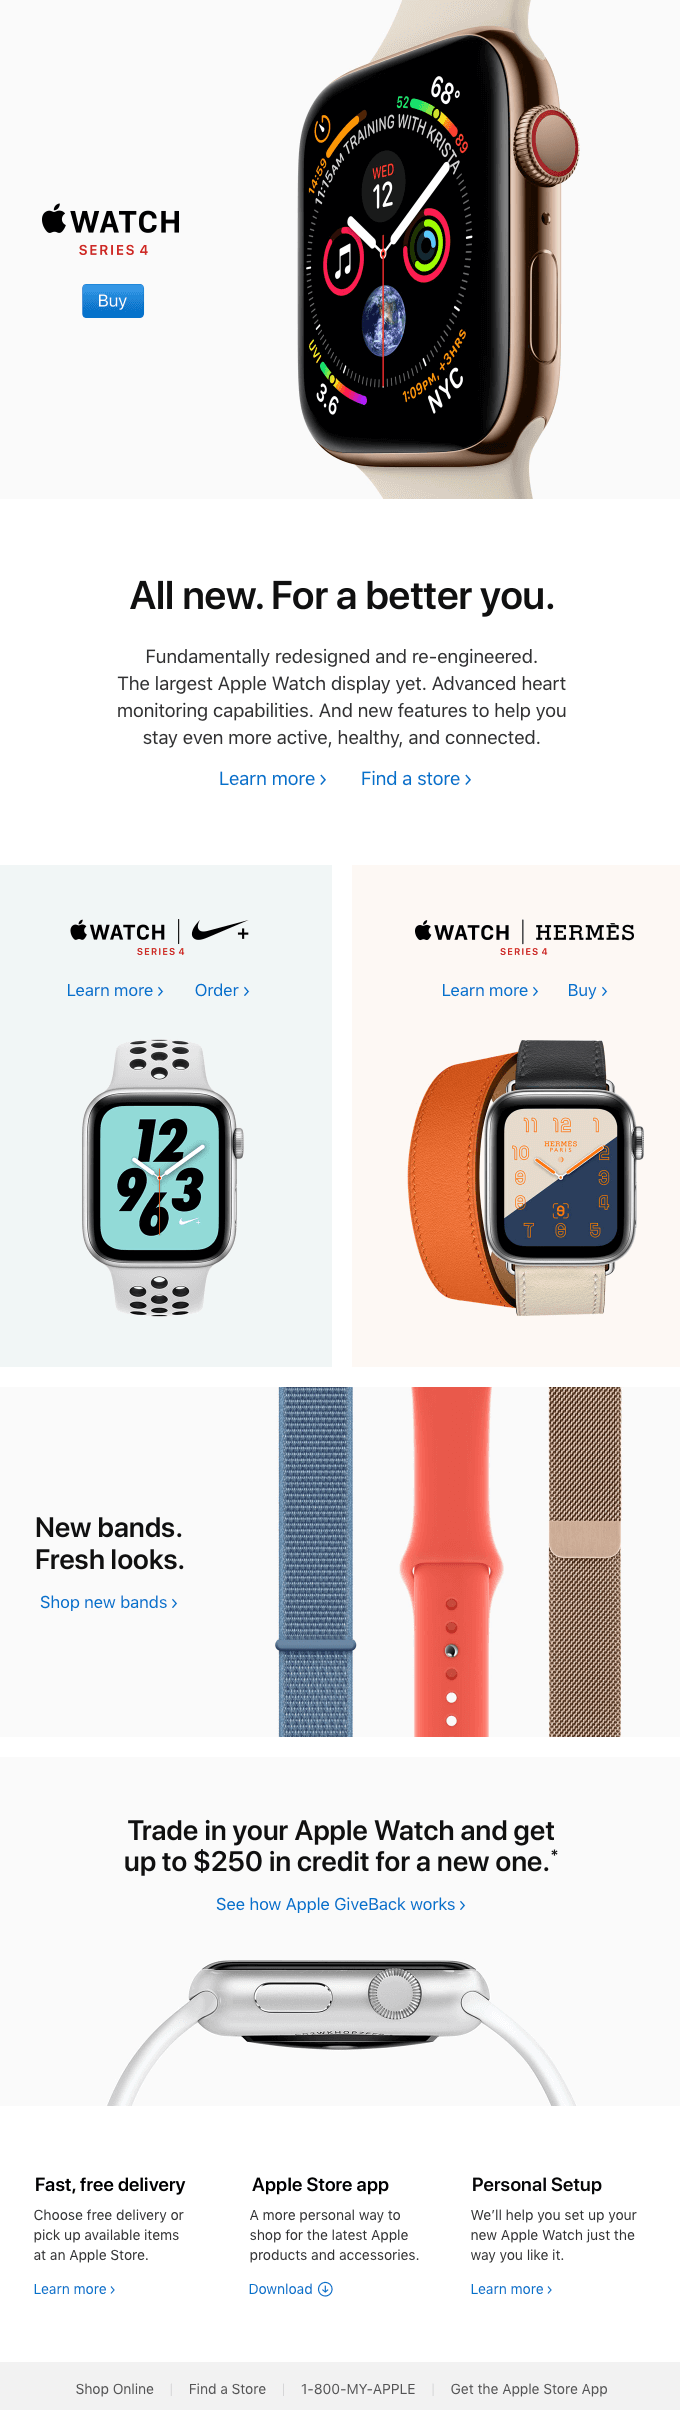 email design trends 2019 apple-watch-series-4-is-here